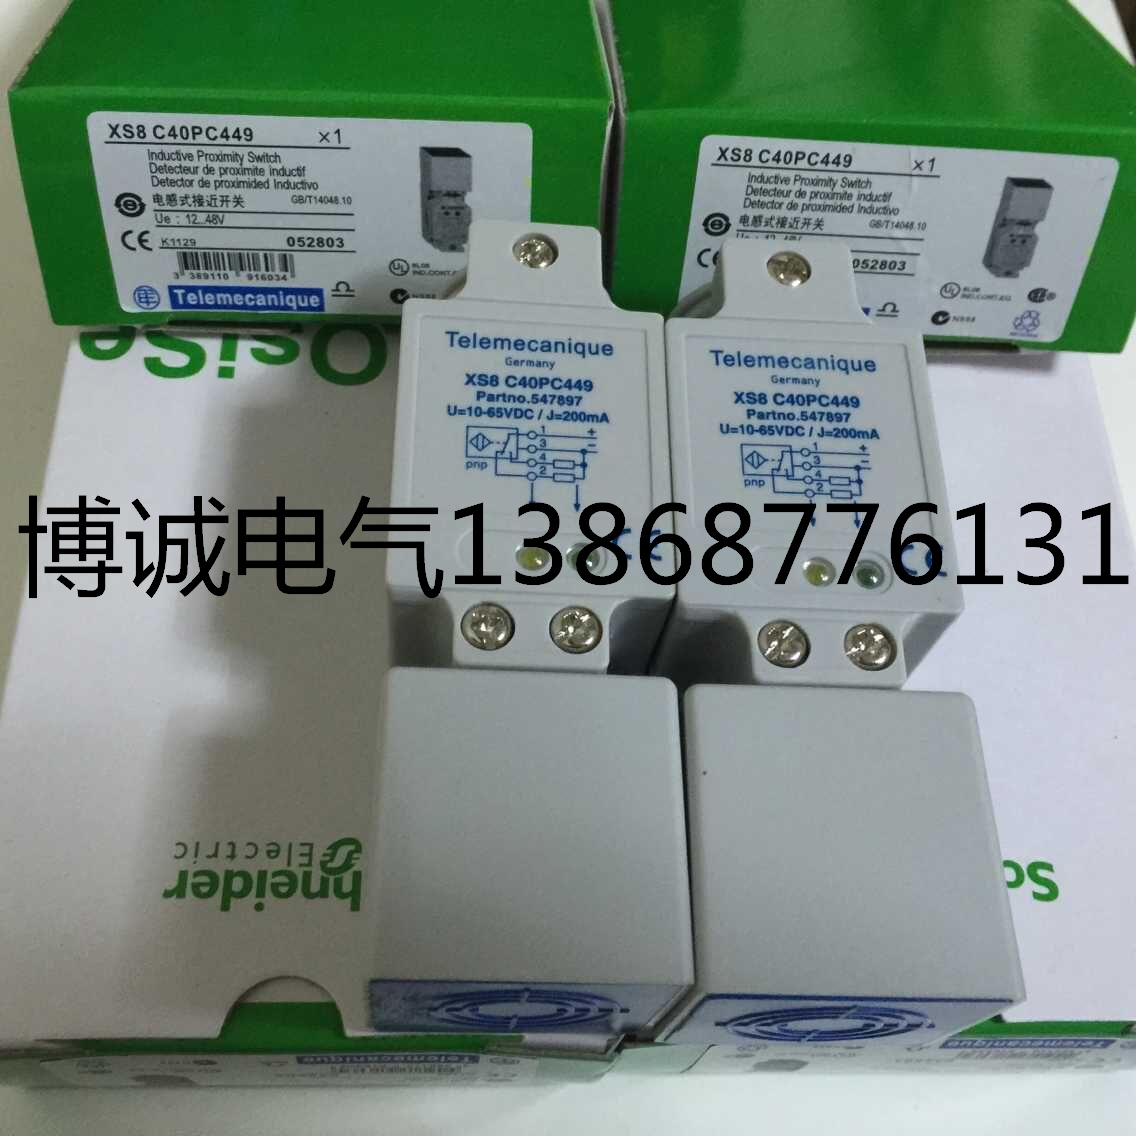 New original XS8C40PC449 XS8-C40PC449 Warranty For Two Year new original ii0309 warranty for two year